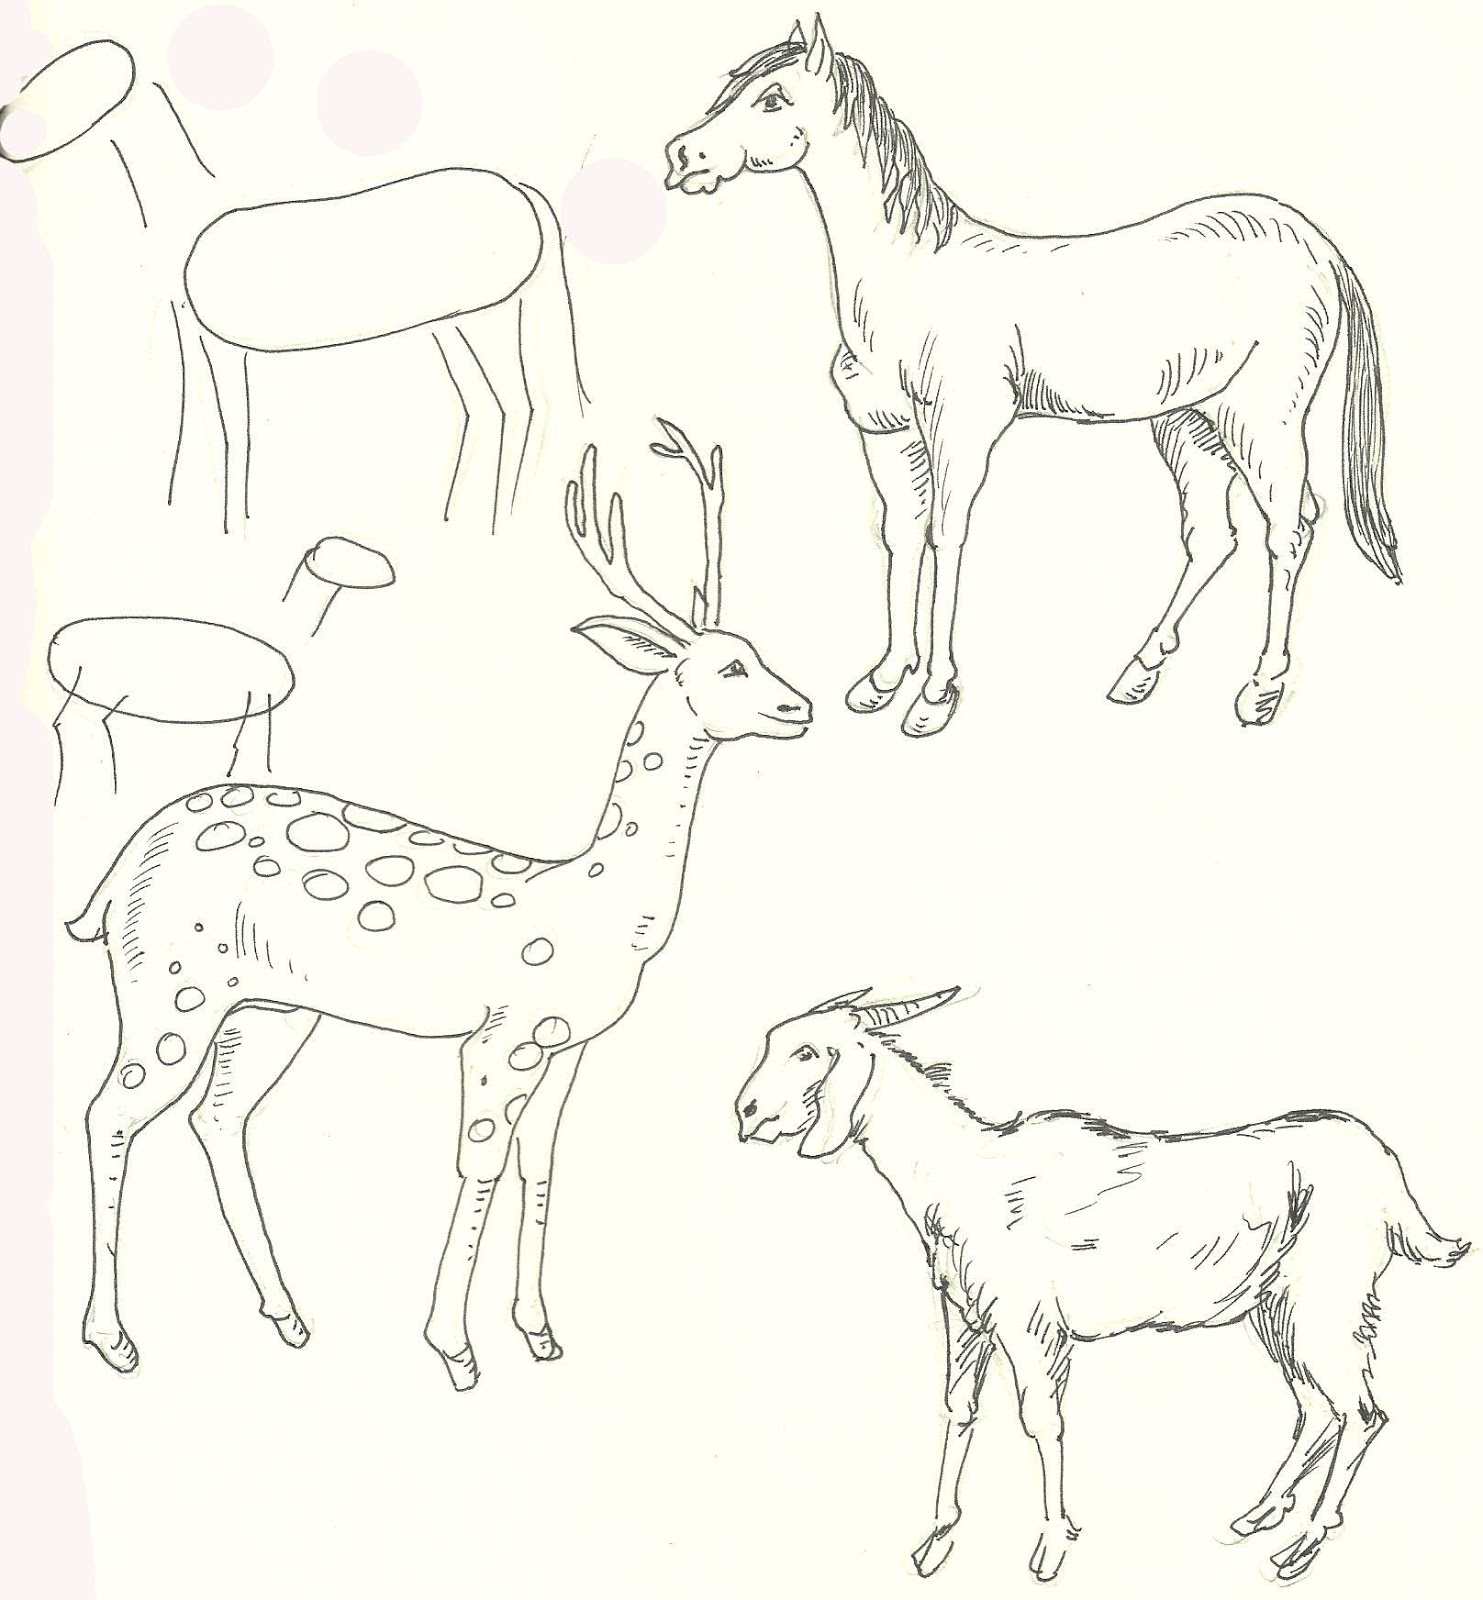 Animal step by step easy outline drawing horse deer goat